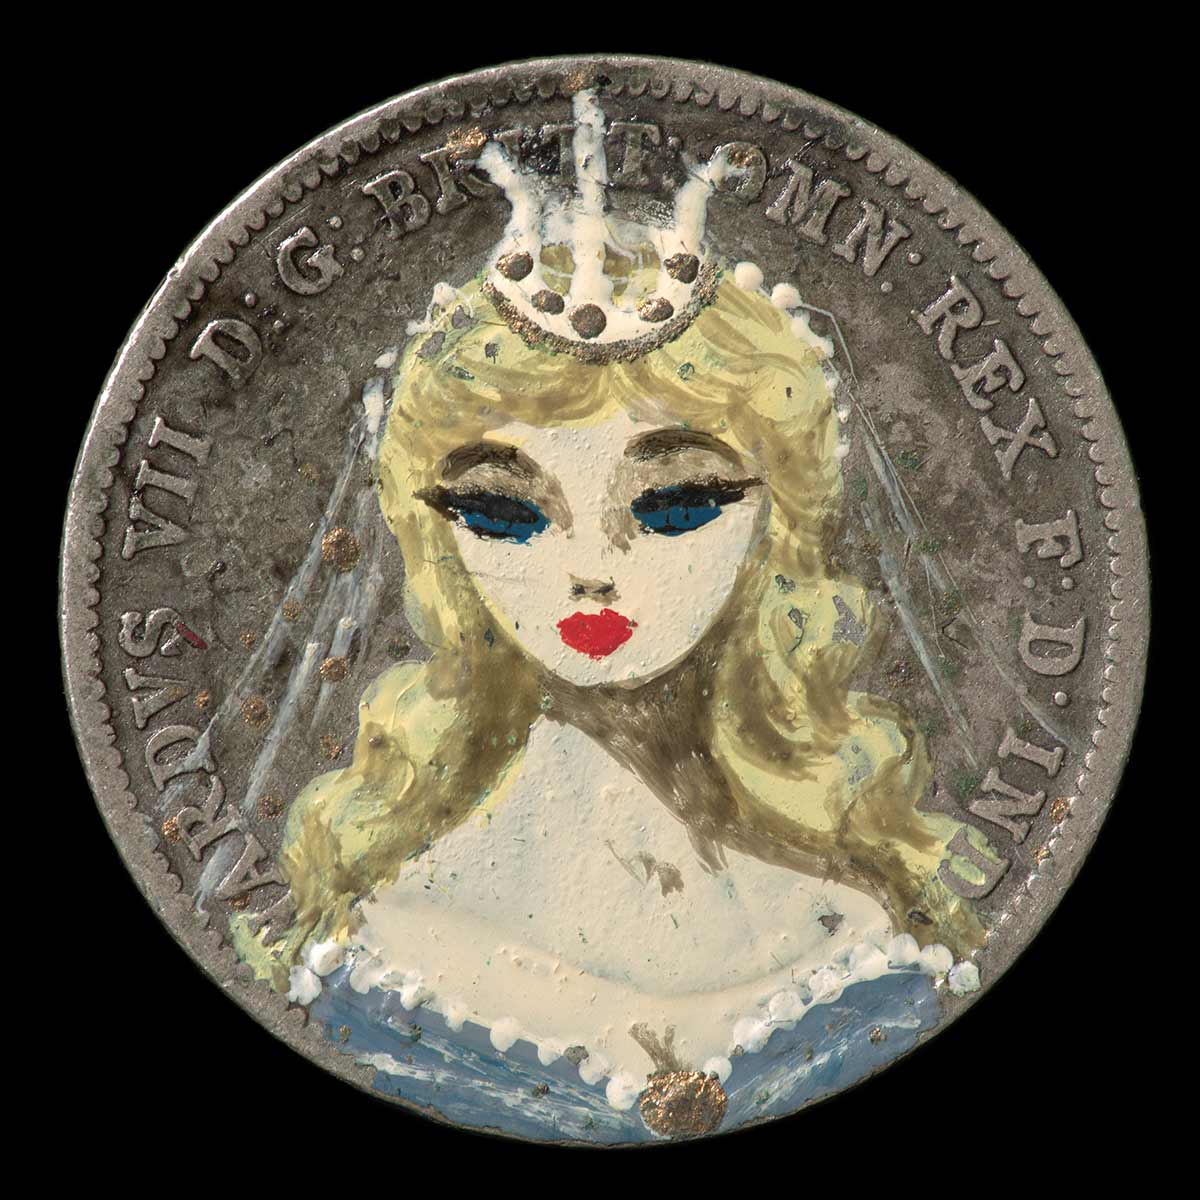 A circular, hand painted silver coloured metal coin. One face is overpainted with a head and shoulders portrait of a woman with long blond hair wearing a blue and white dress, and a crown. - click to view larger image